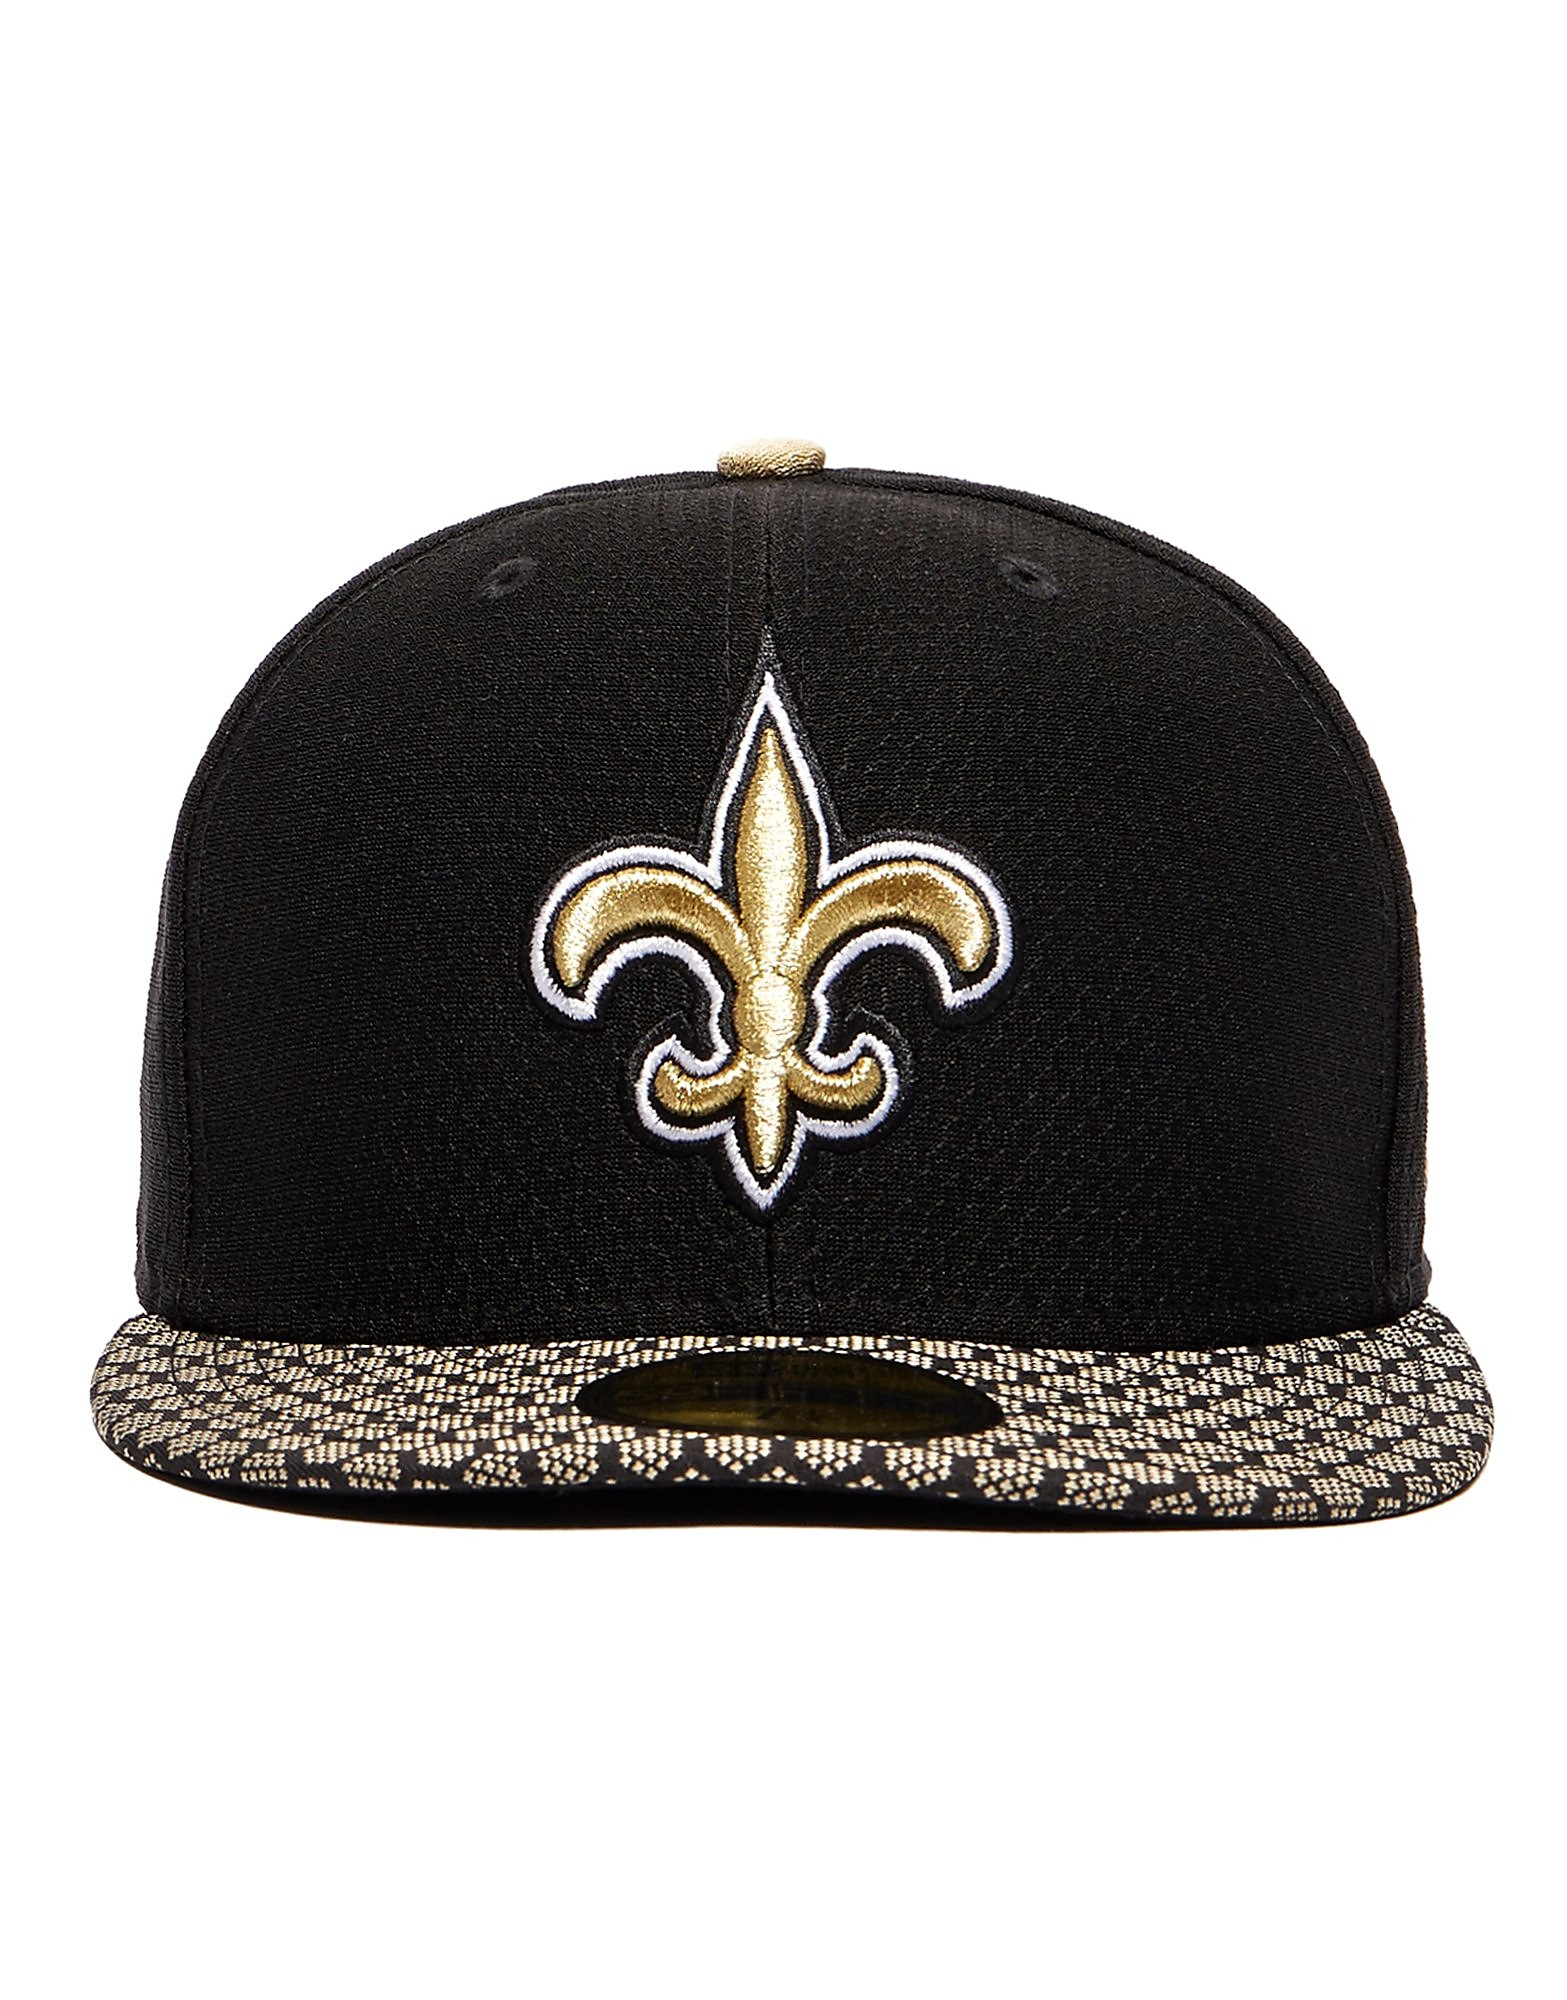 New Era New Orleans Saints 59FIFTY Cap